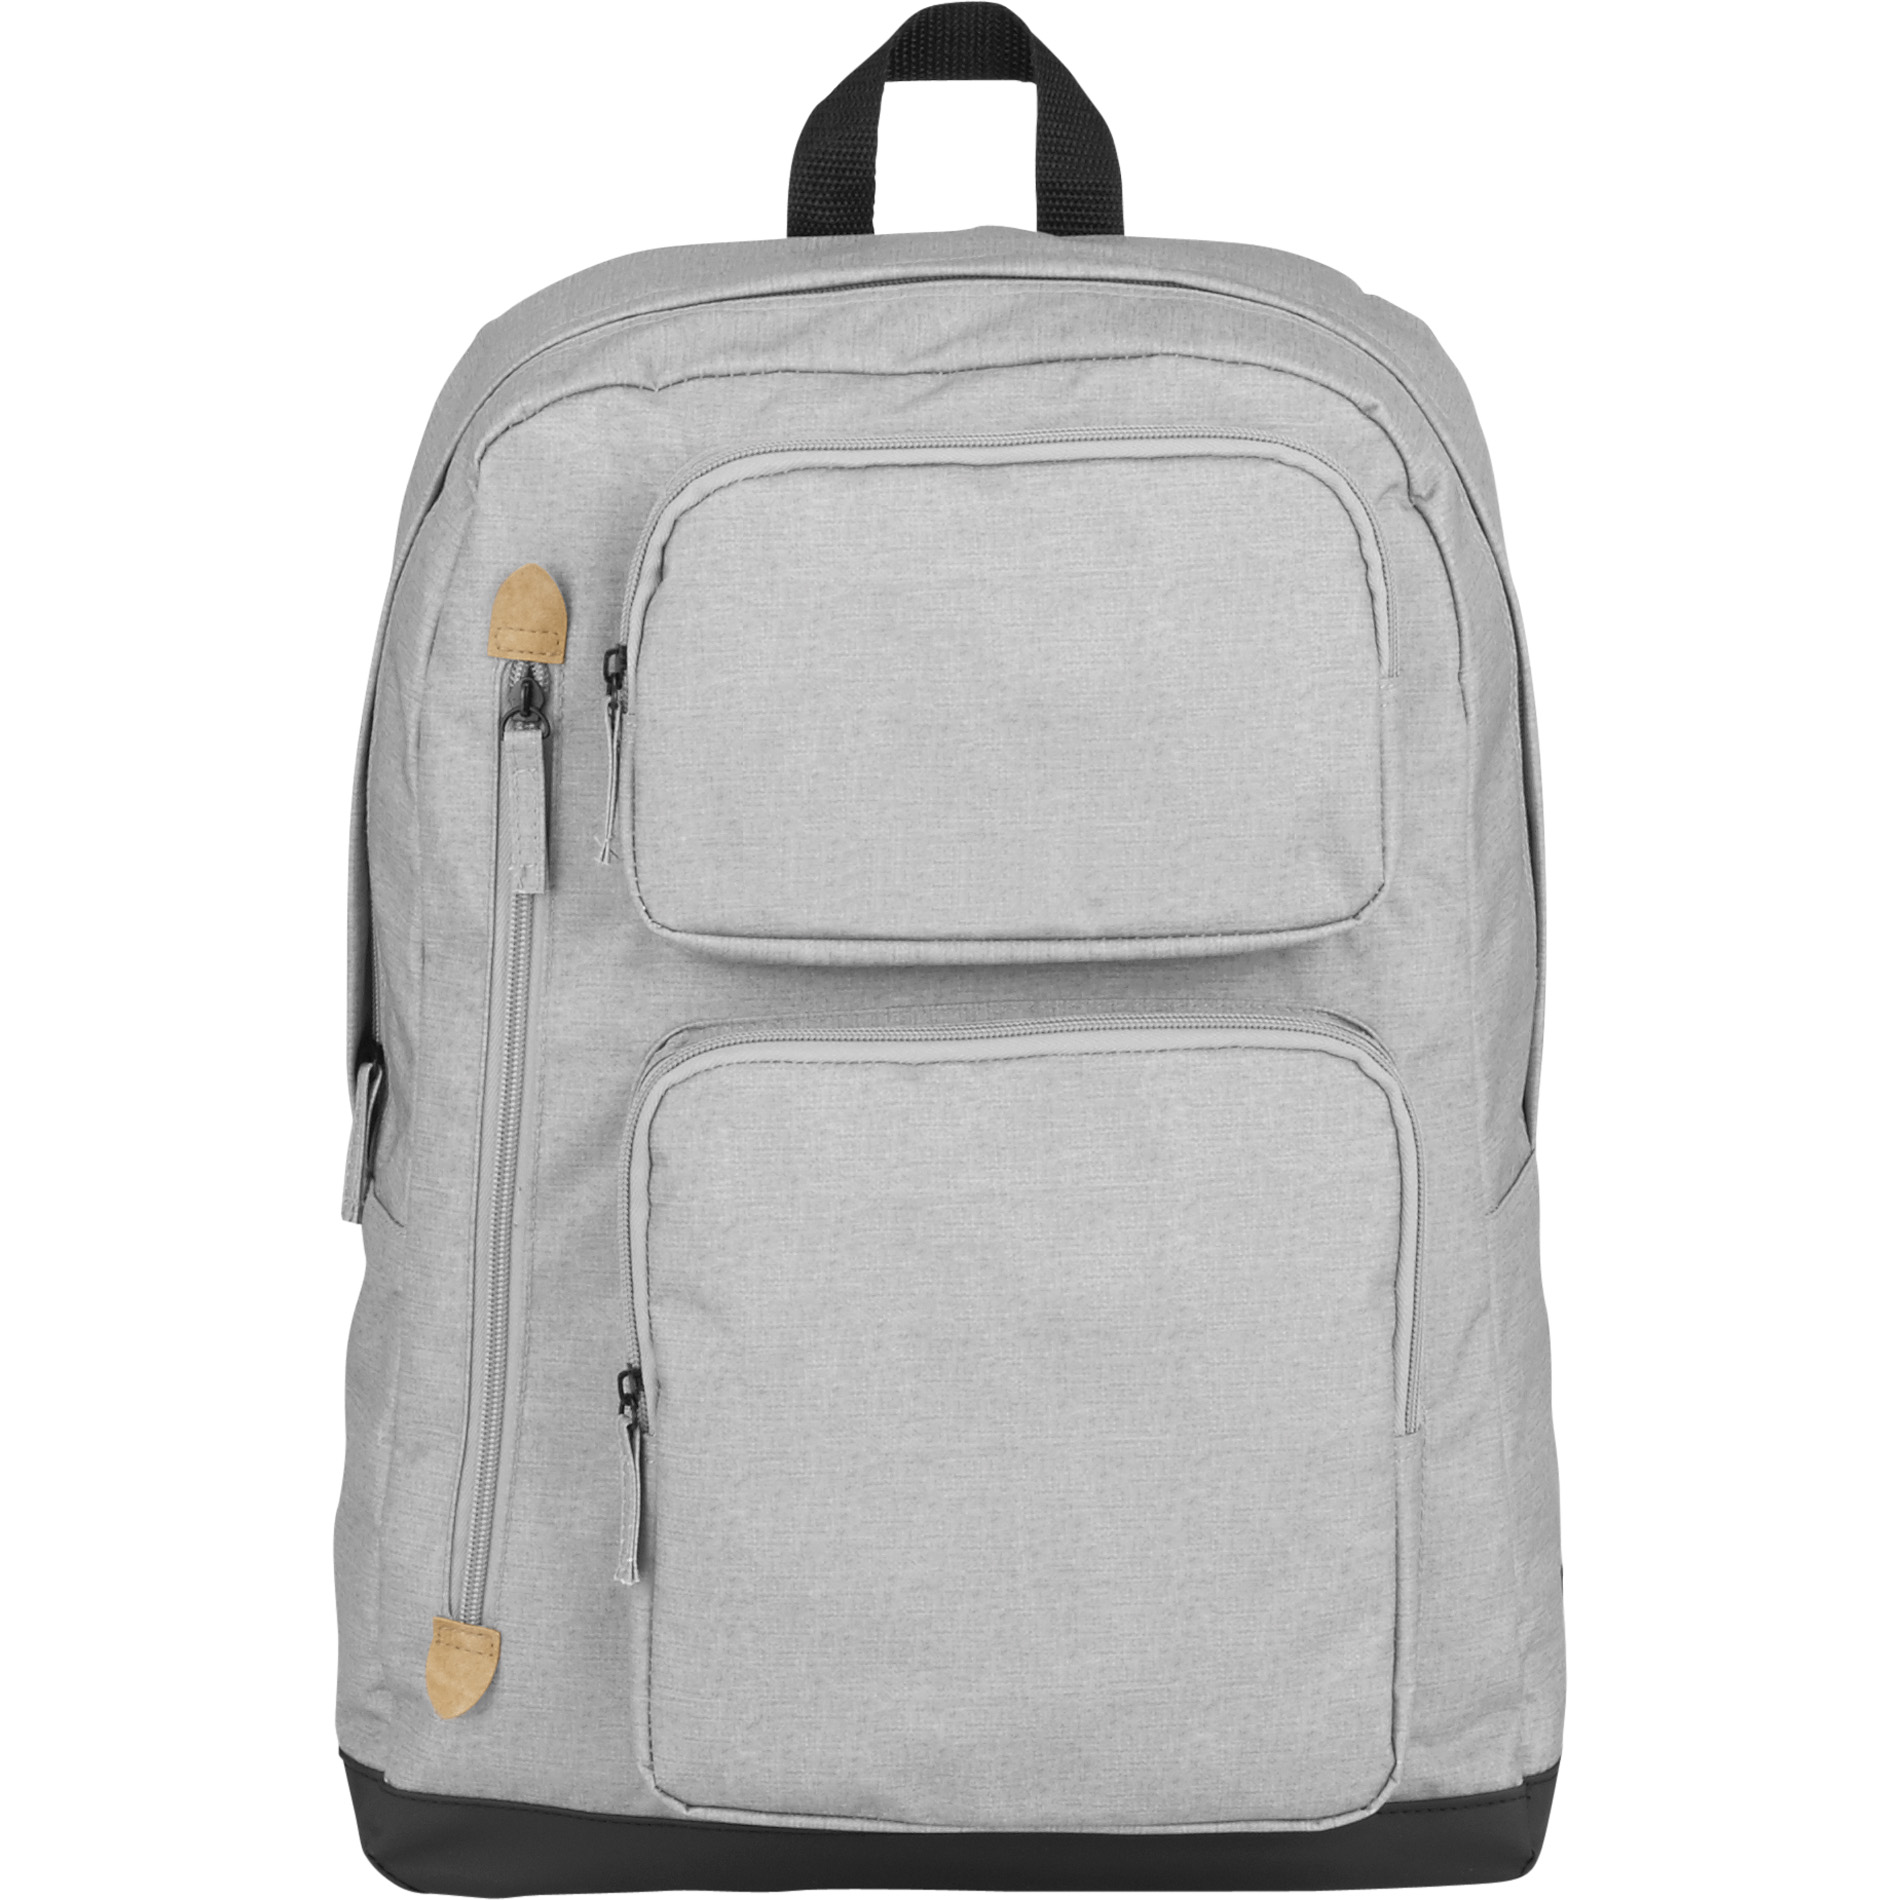 Merchant & Craft 3750-18 - Elias 15 Computer Backpack